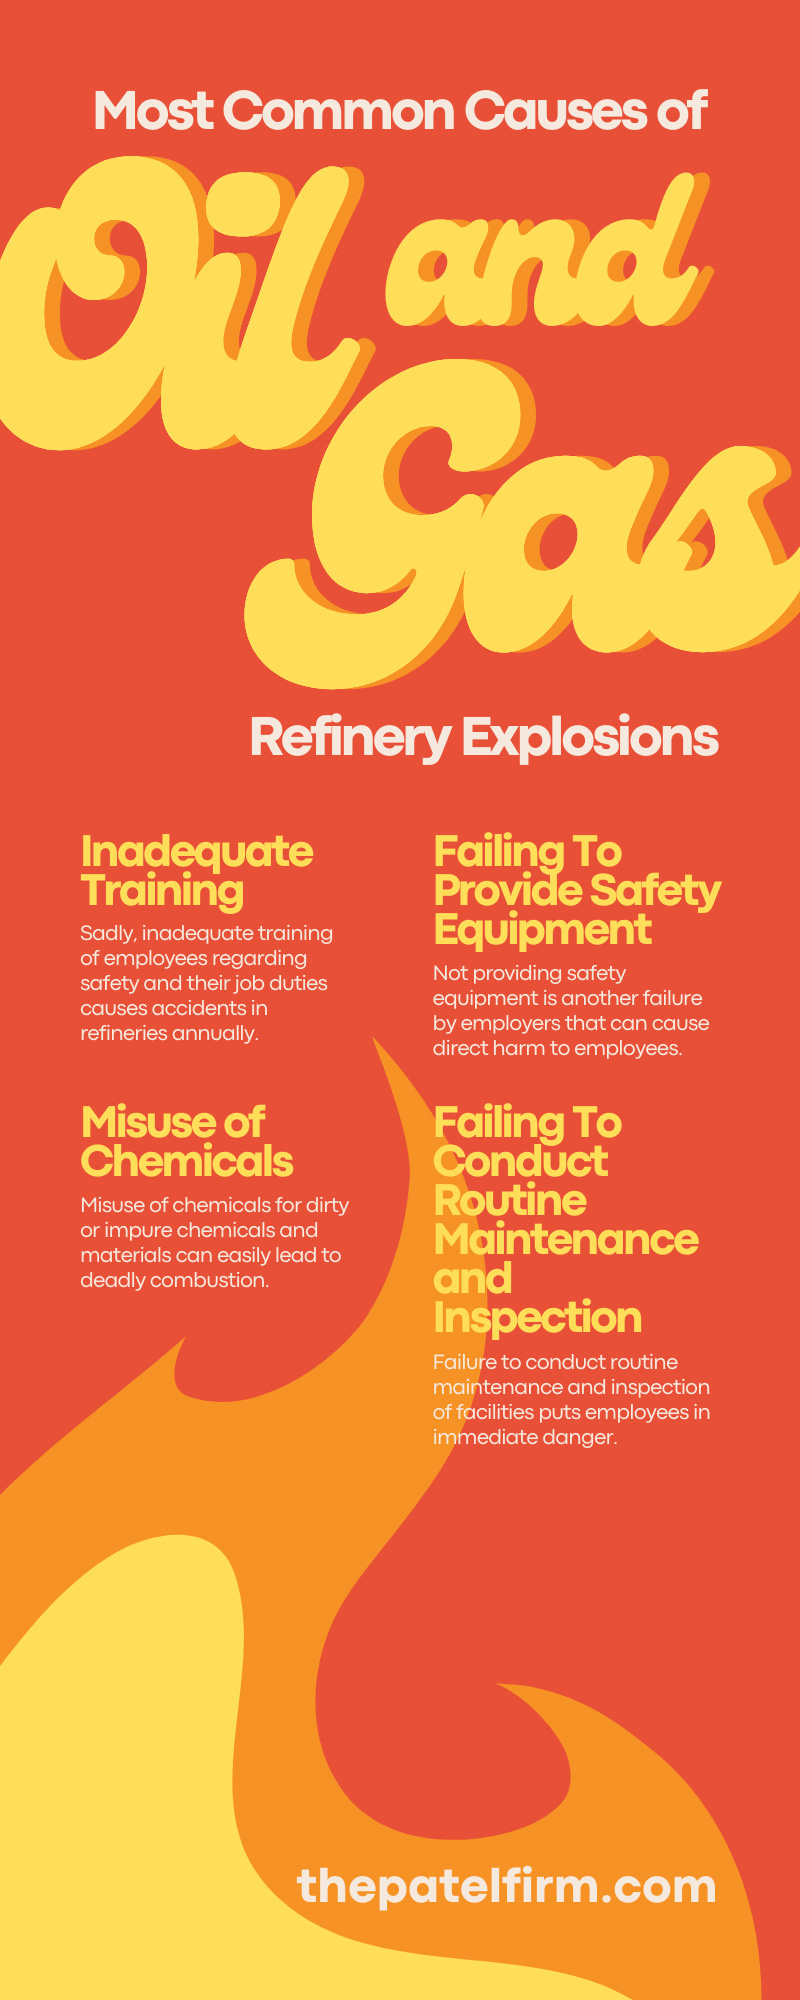 The Most Common Causes of Oil and Gas Refinery Explosions